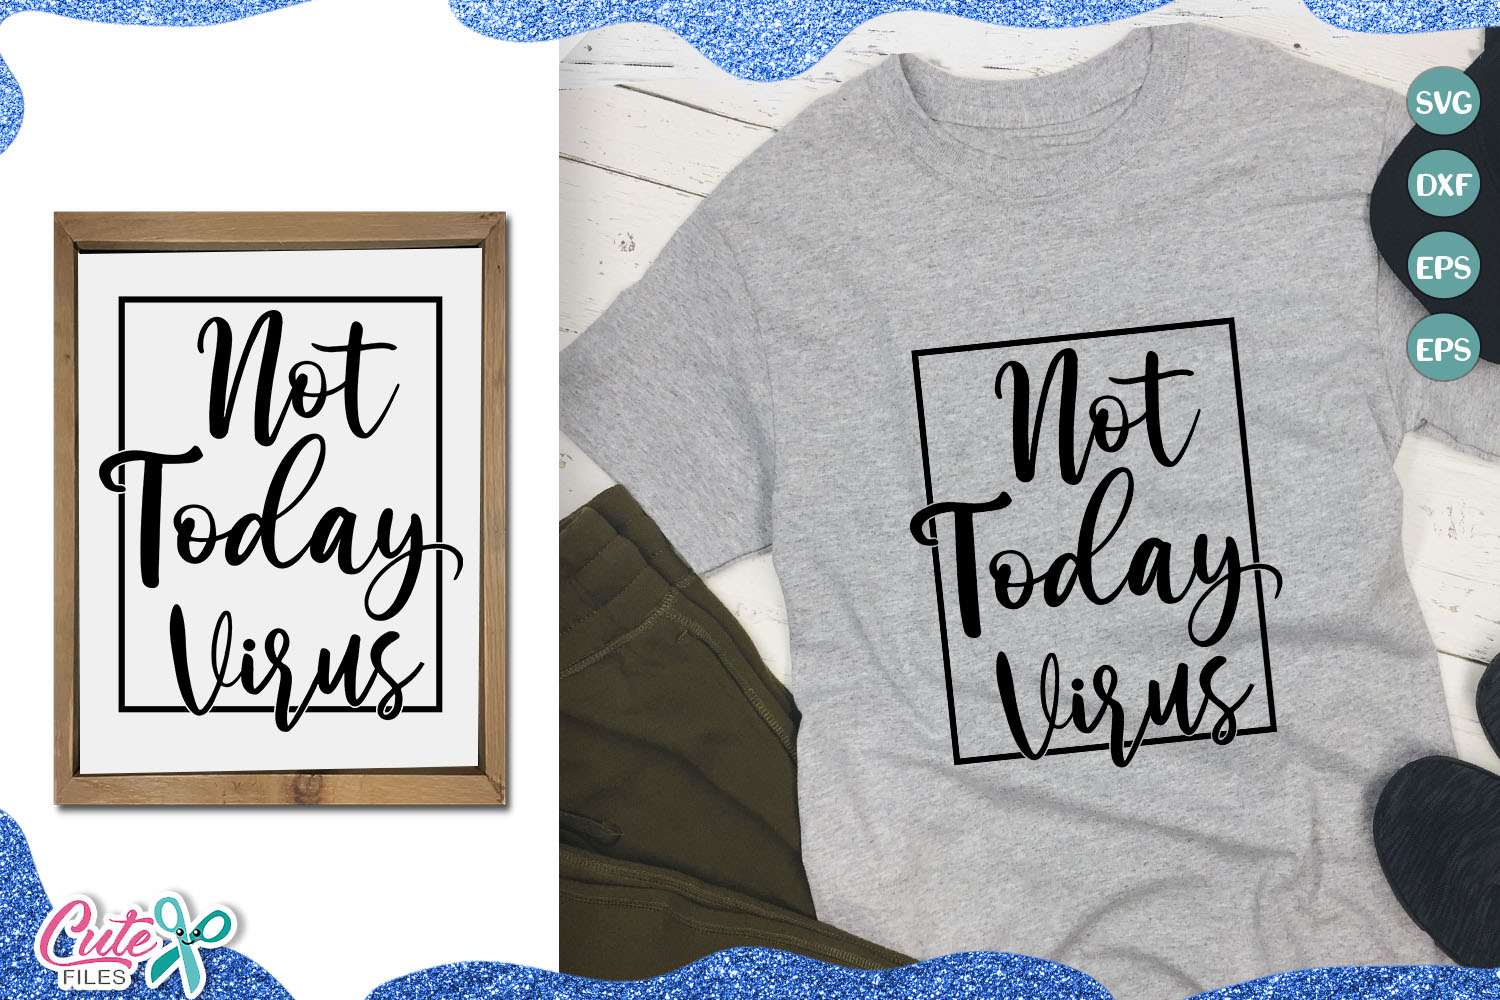 Download Free Not Today Virus For Craftters Graphic By Cute Files Creative for Cricut Explore, Silhouette and other cutting machines.